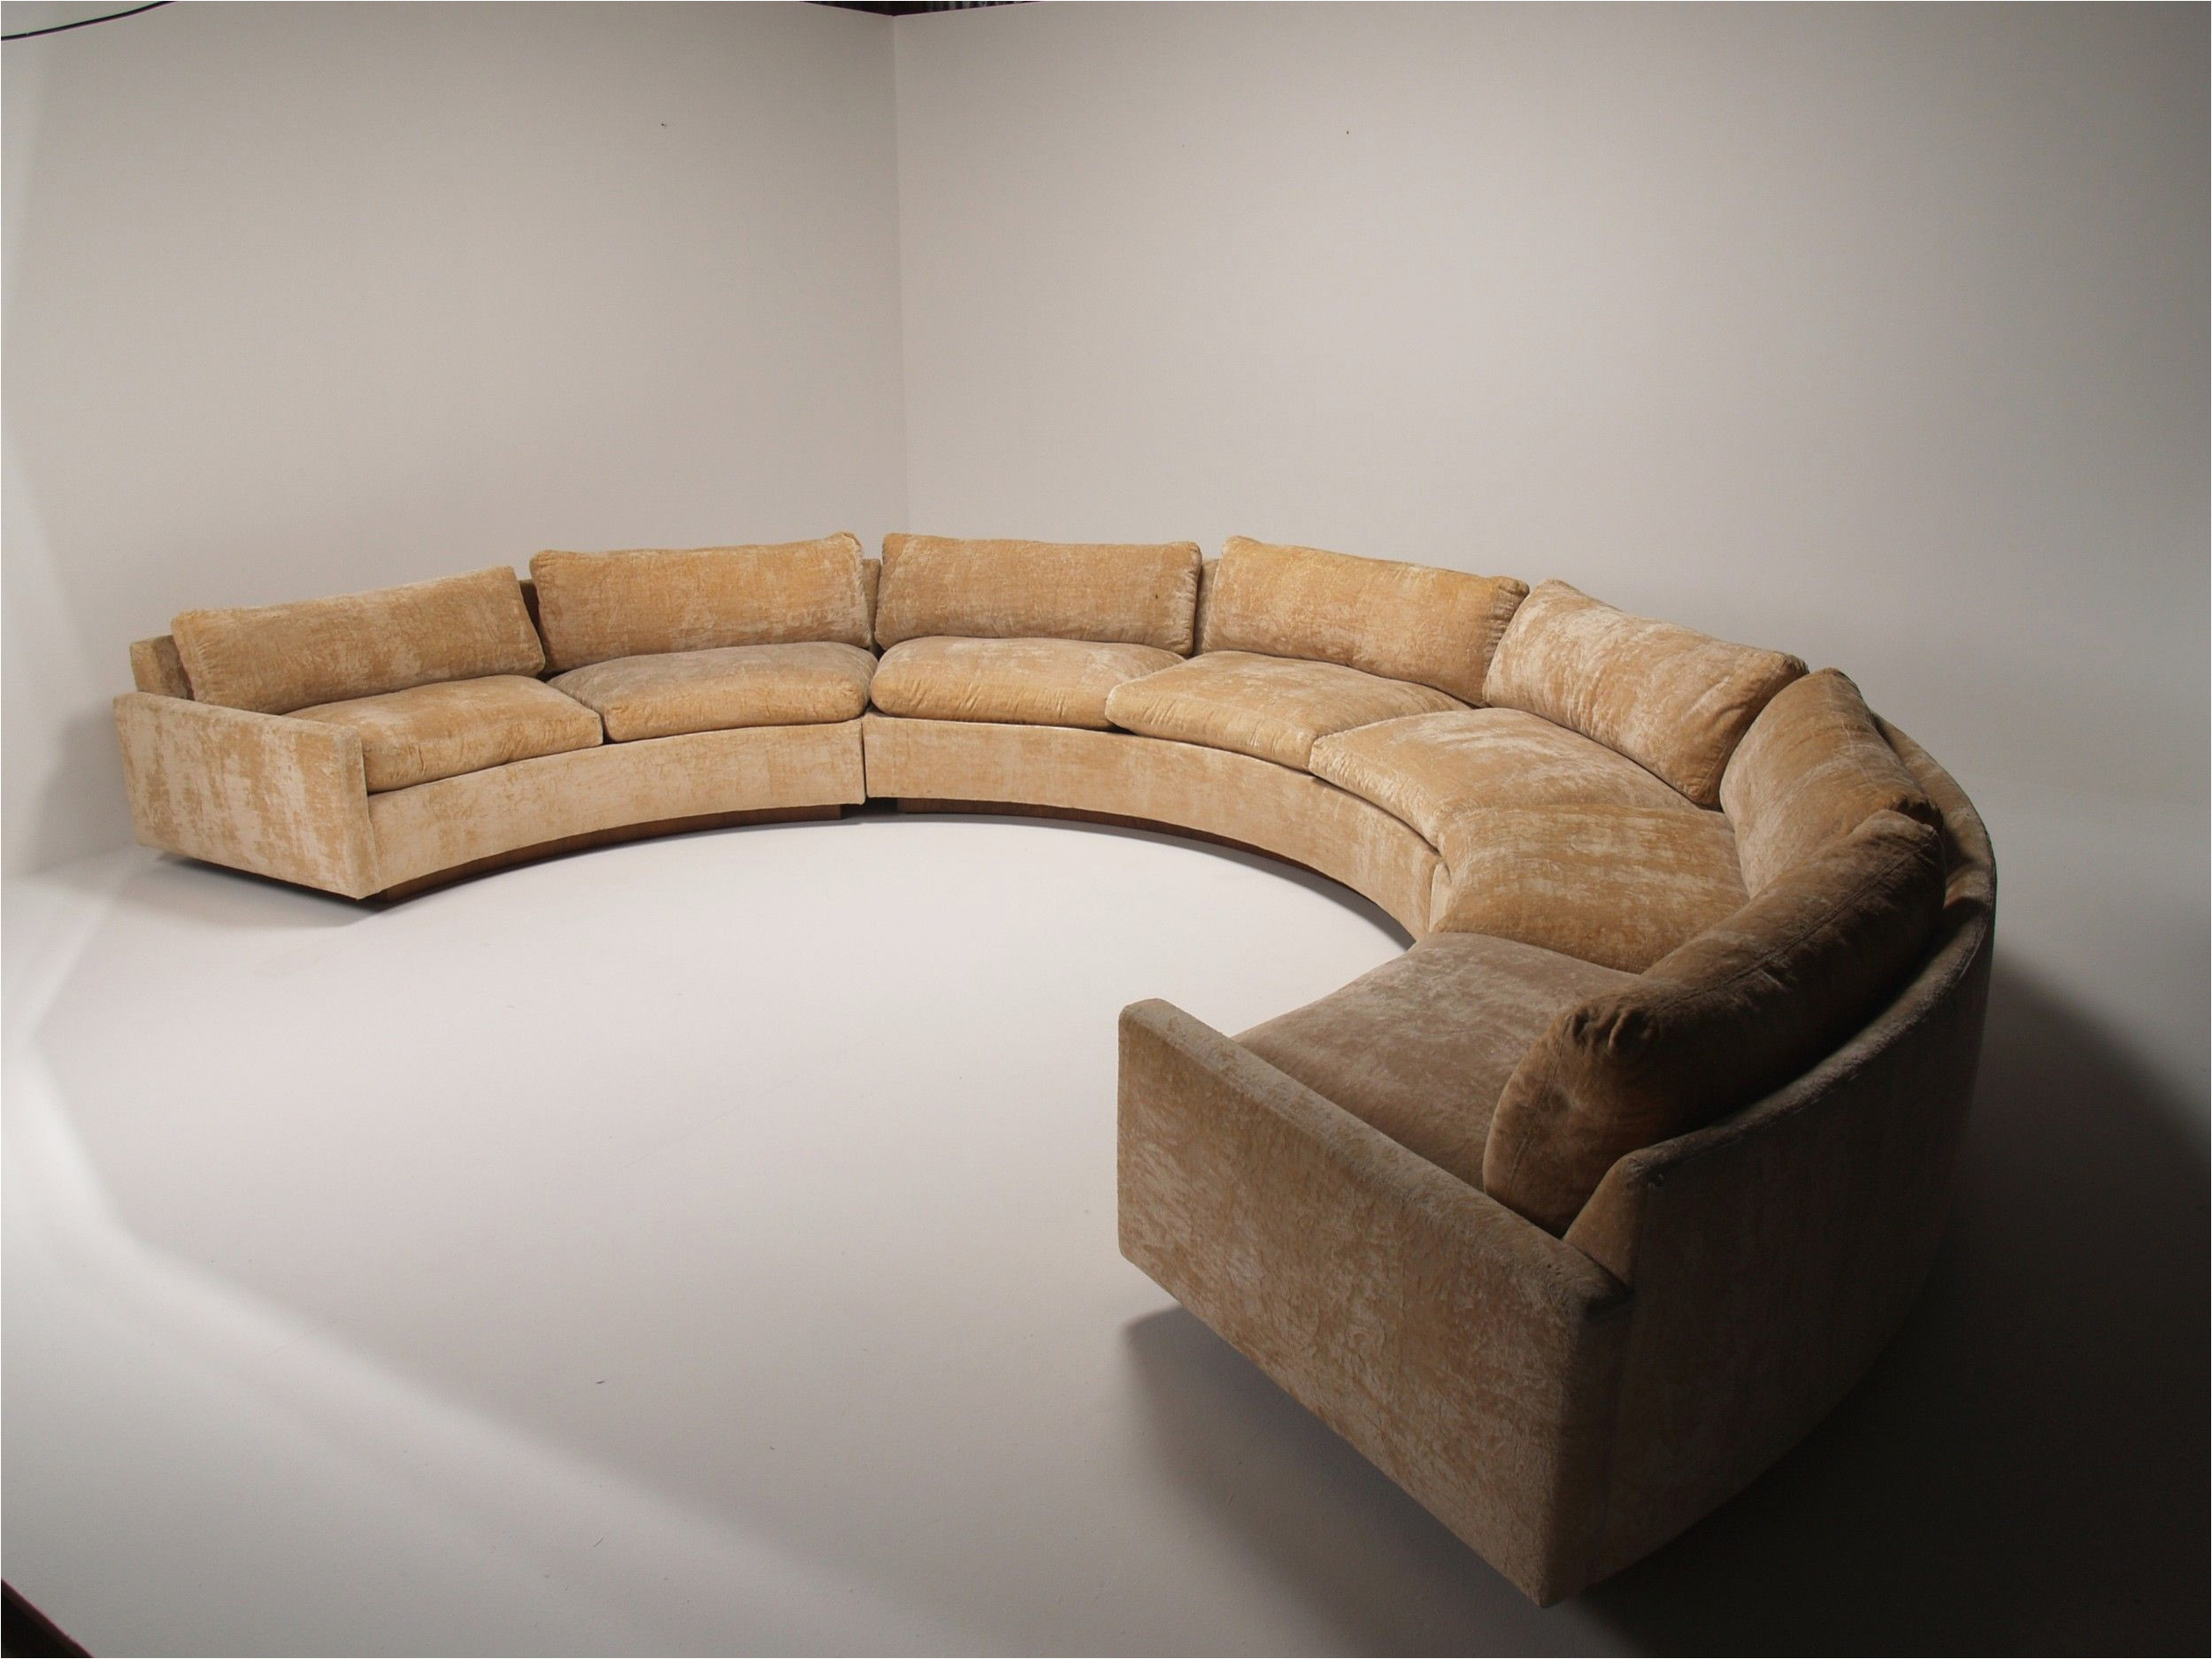 new discount furniture fort pierce nice home design top and home ideas